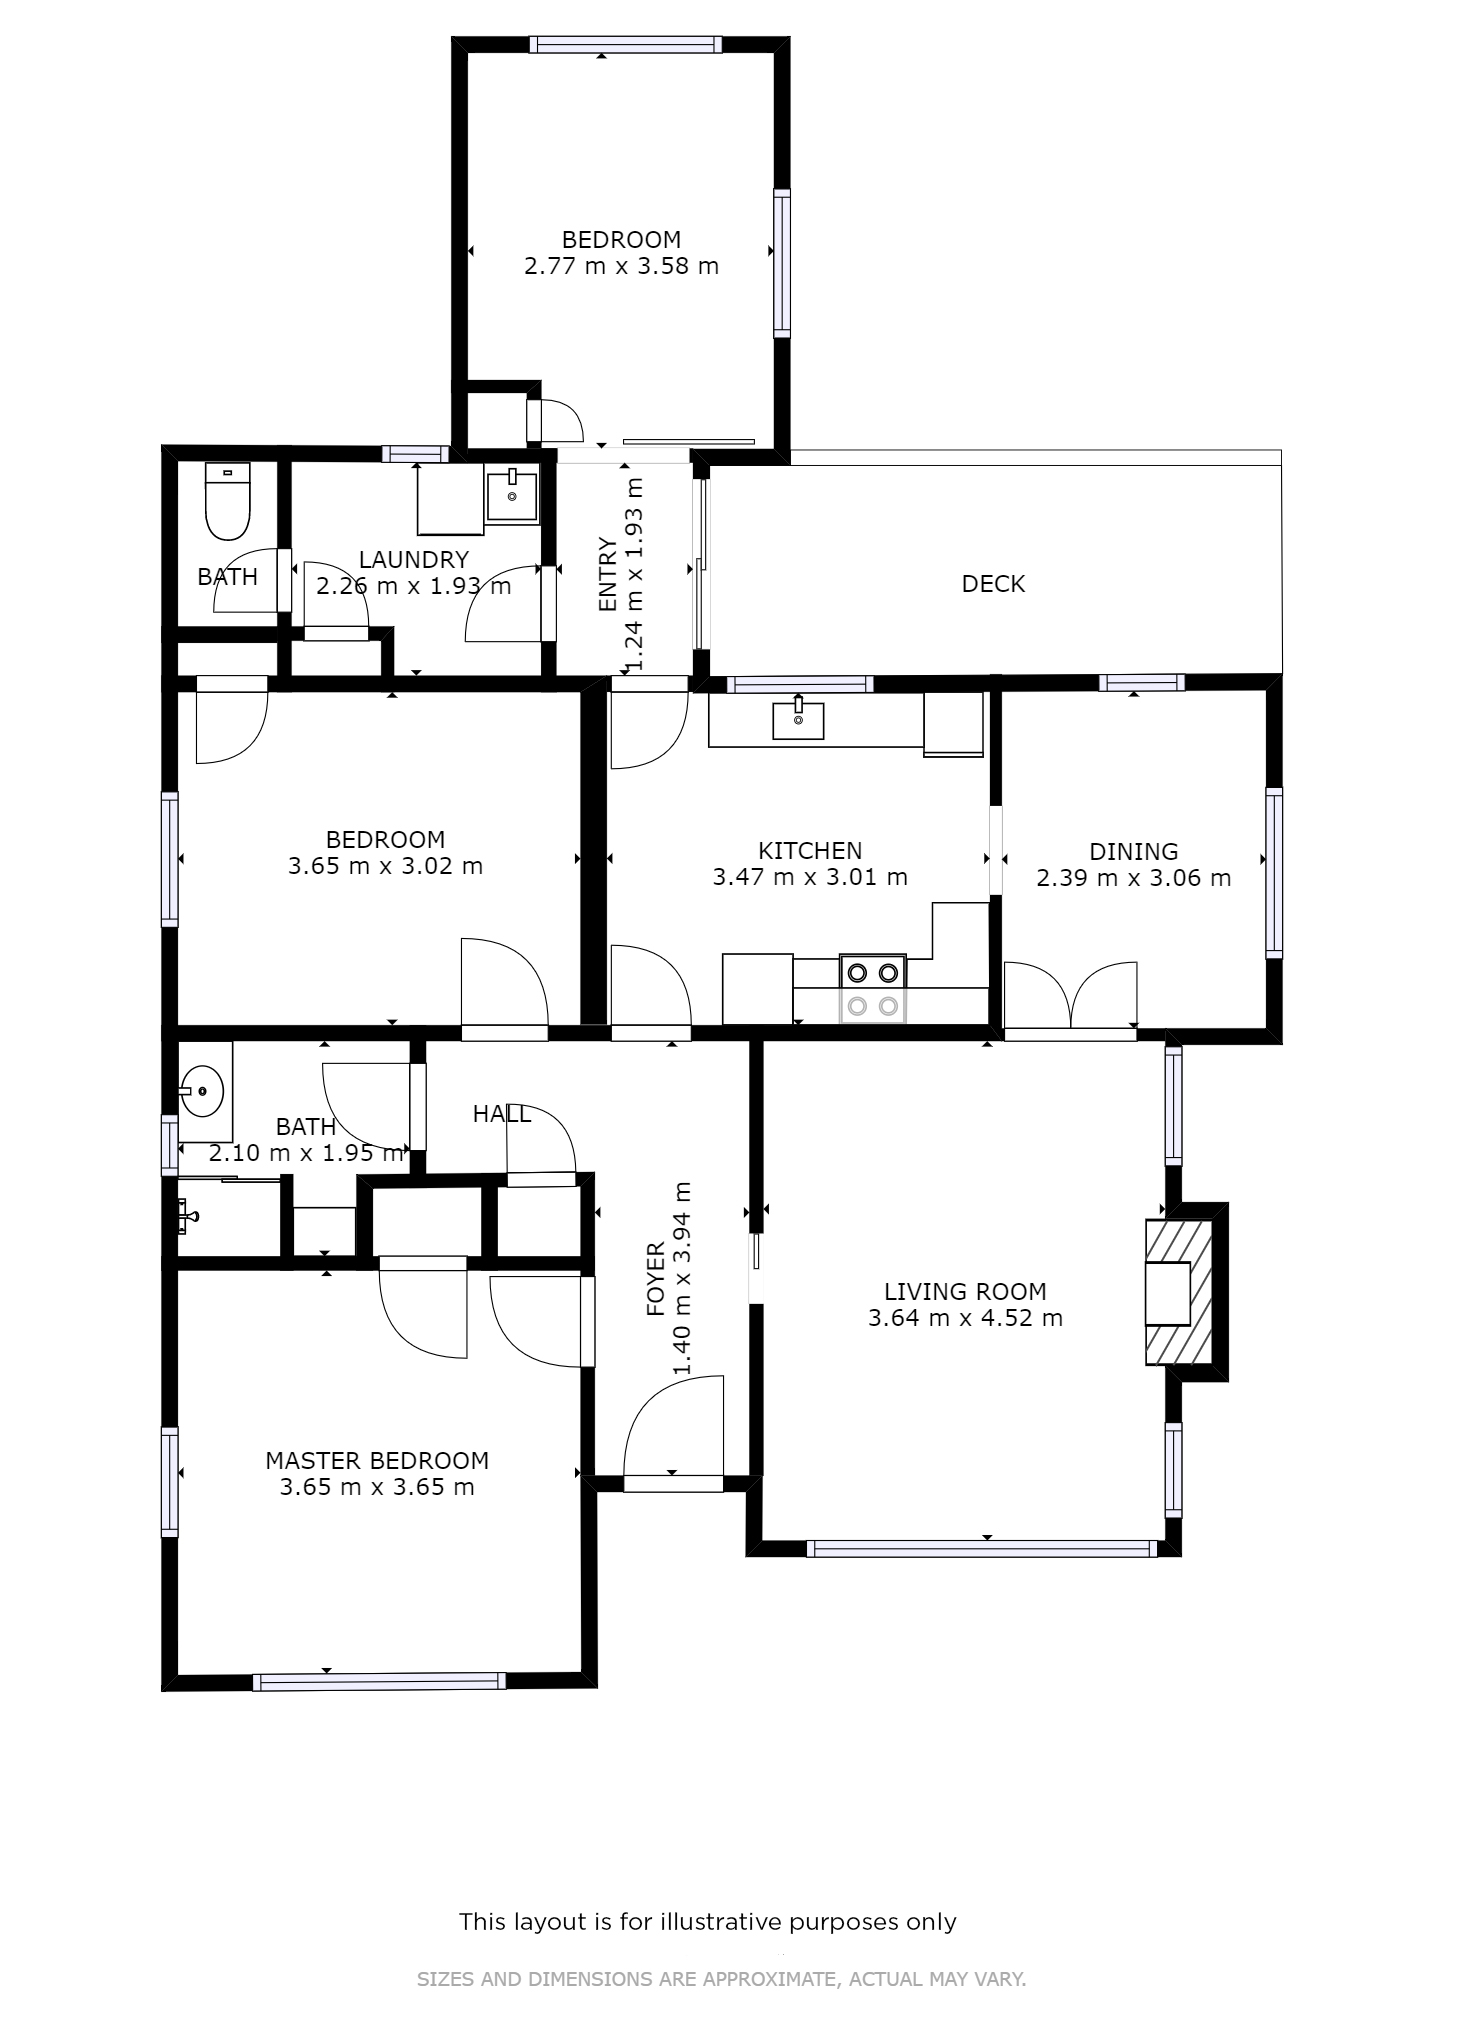 2 Douglas Street Kensingtonproperty floorplan image